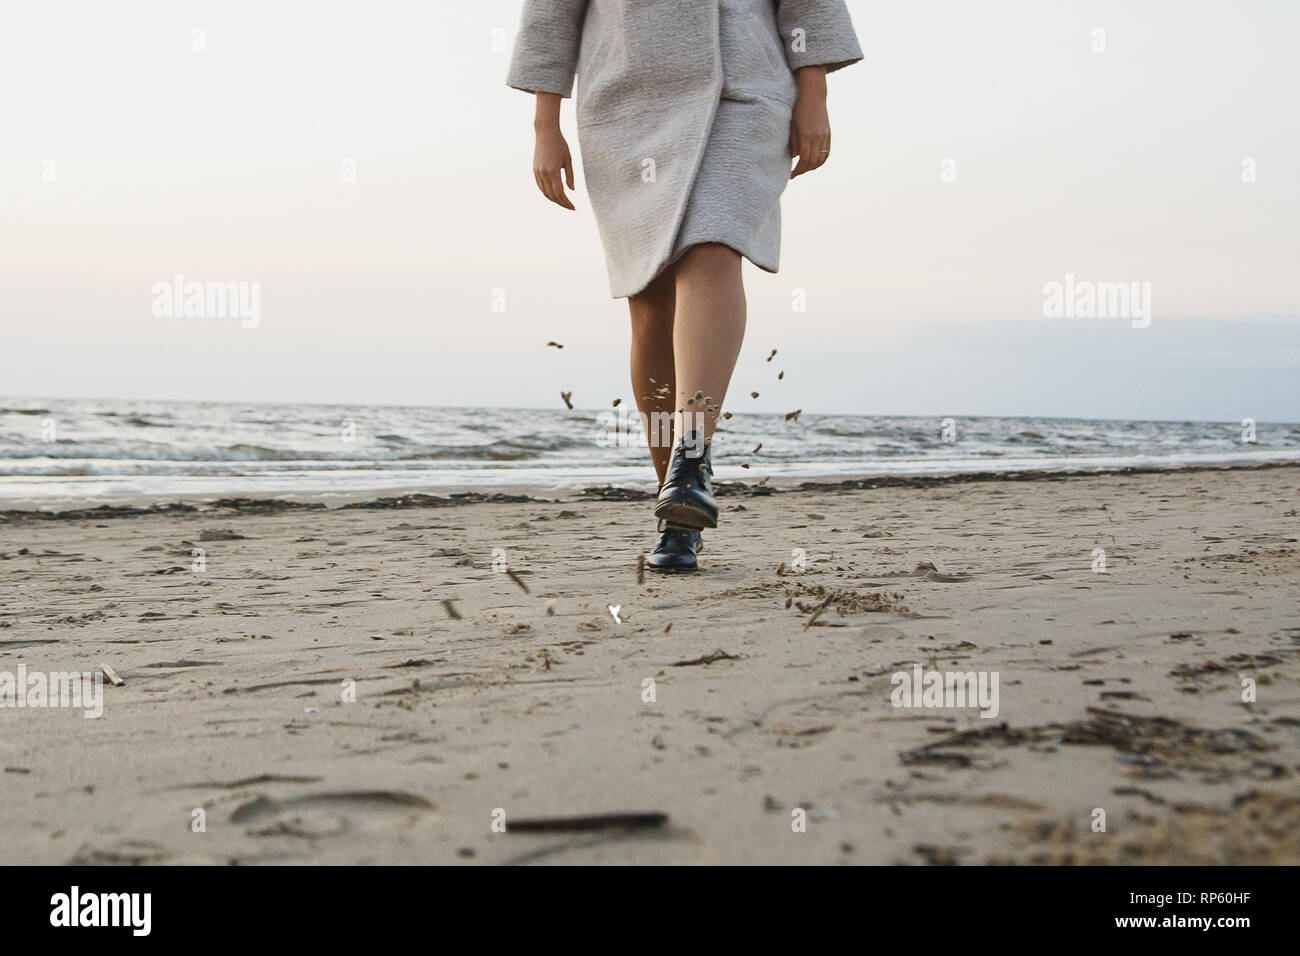 Carefree woman in black leather boots kick sand on beach. Flying wet sand. Concept footwear protection, water and dust resistance. - Stock Image